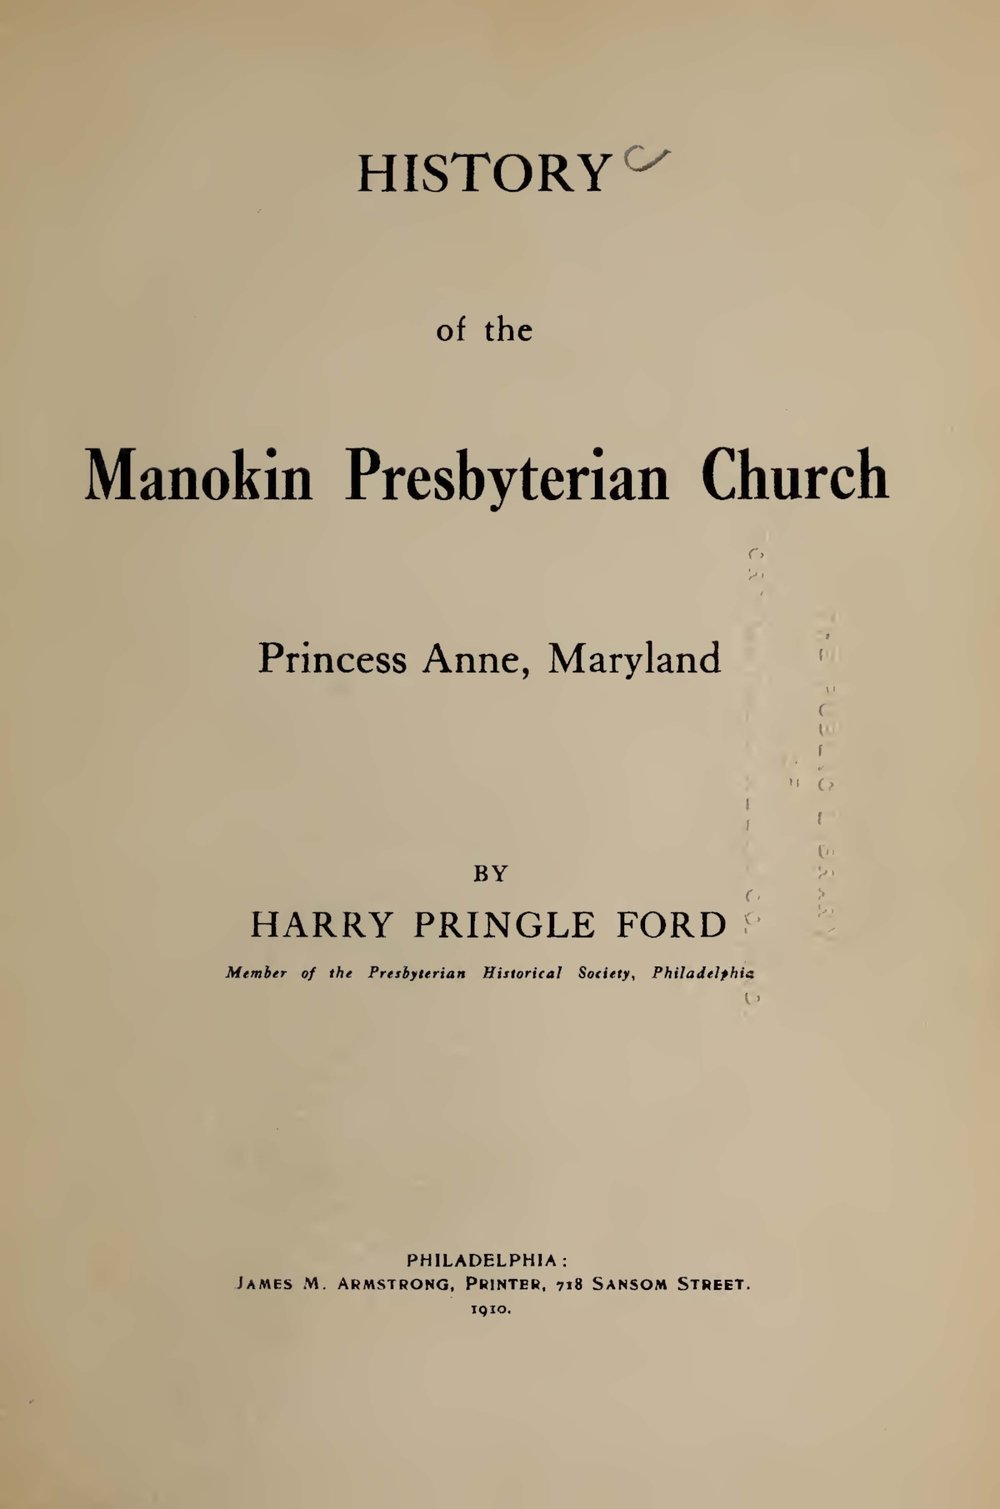 Ford, Harry Pringle, History of the Manokin Presbyterian Church Title Page.jpg